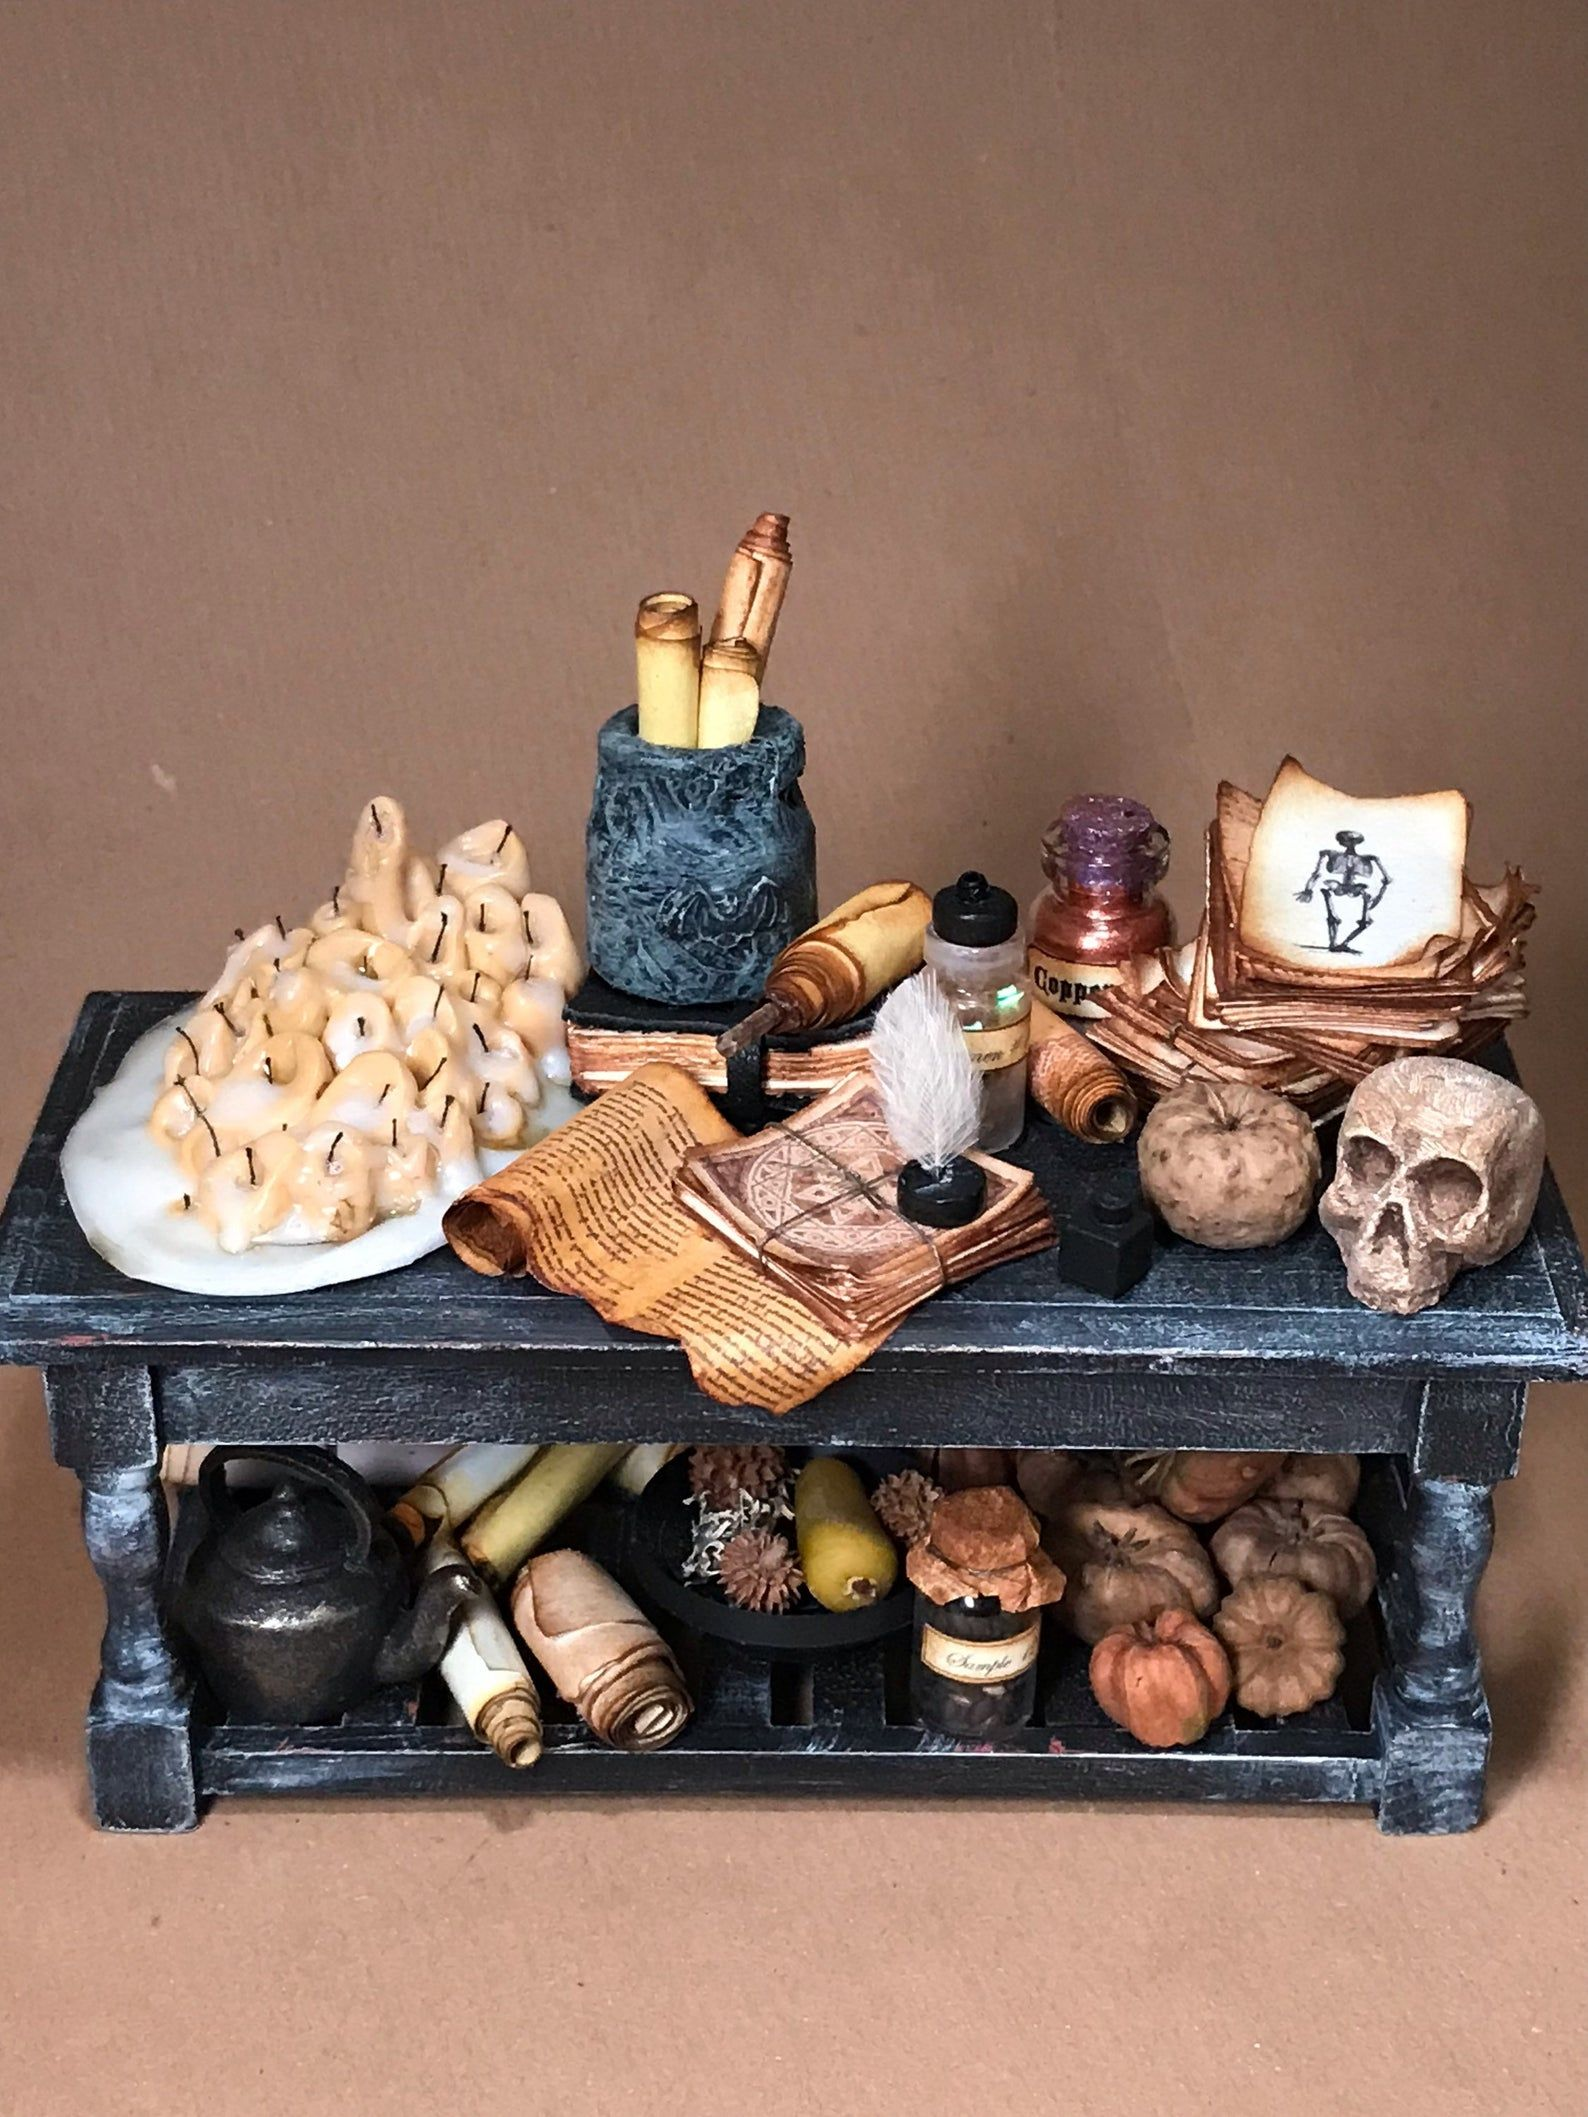 Dollhouse, Miniature, Spooky, Overflowing, Table, Witch, Wizard, Study, Mystical, Spells, Book, Old, Cottage, Haunted, House, 1/12 scale